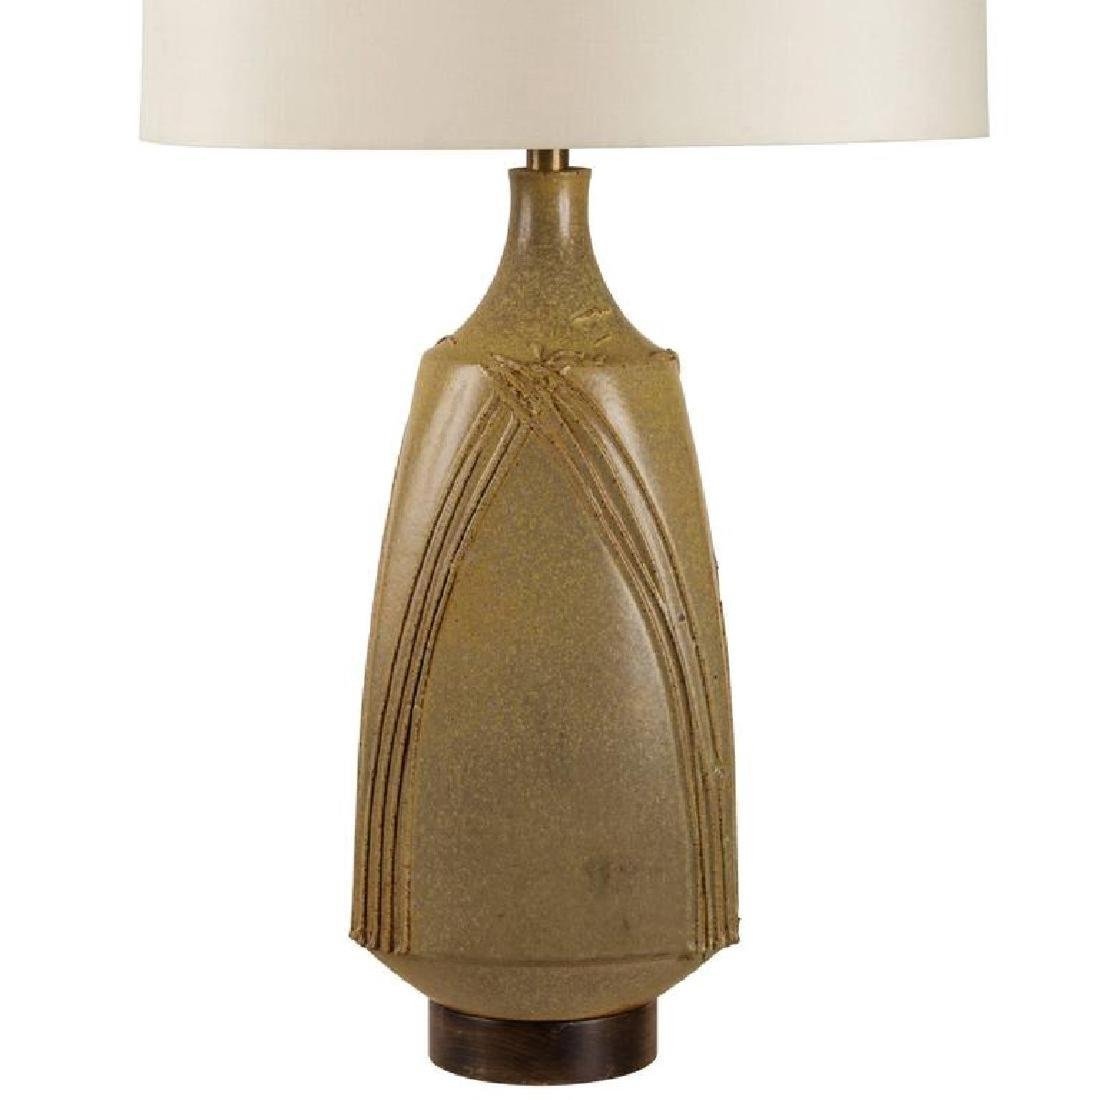 David Cressey Table Lamp